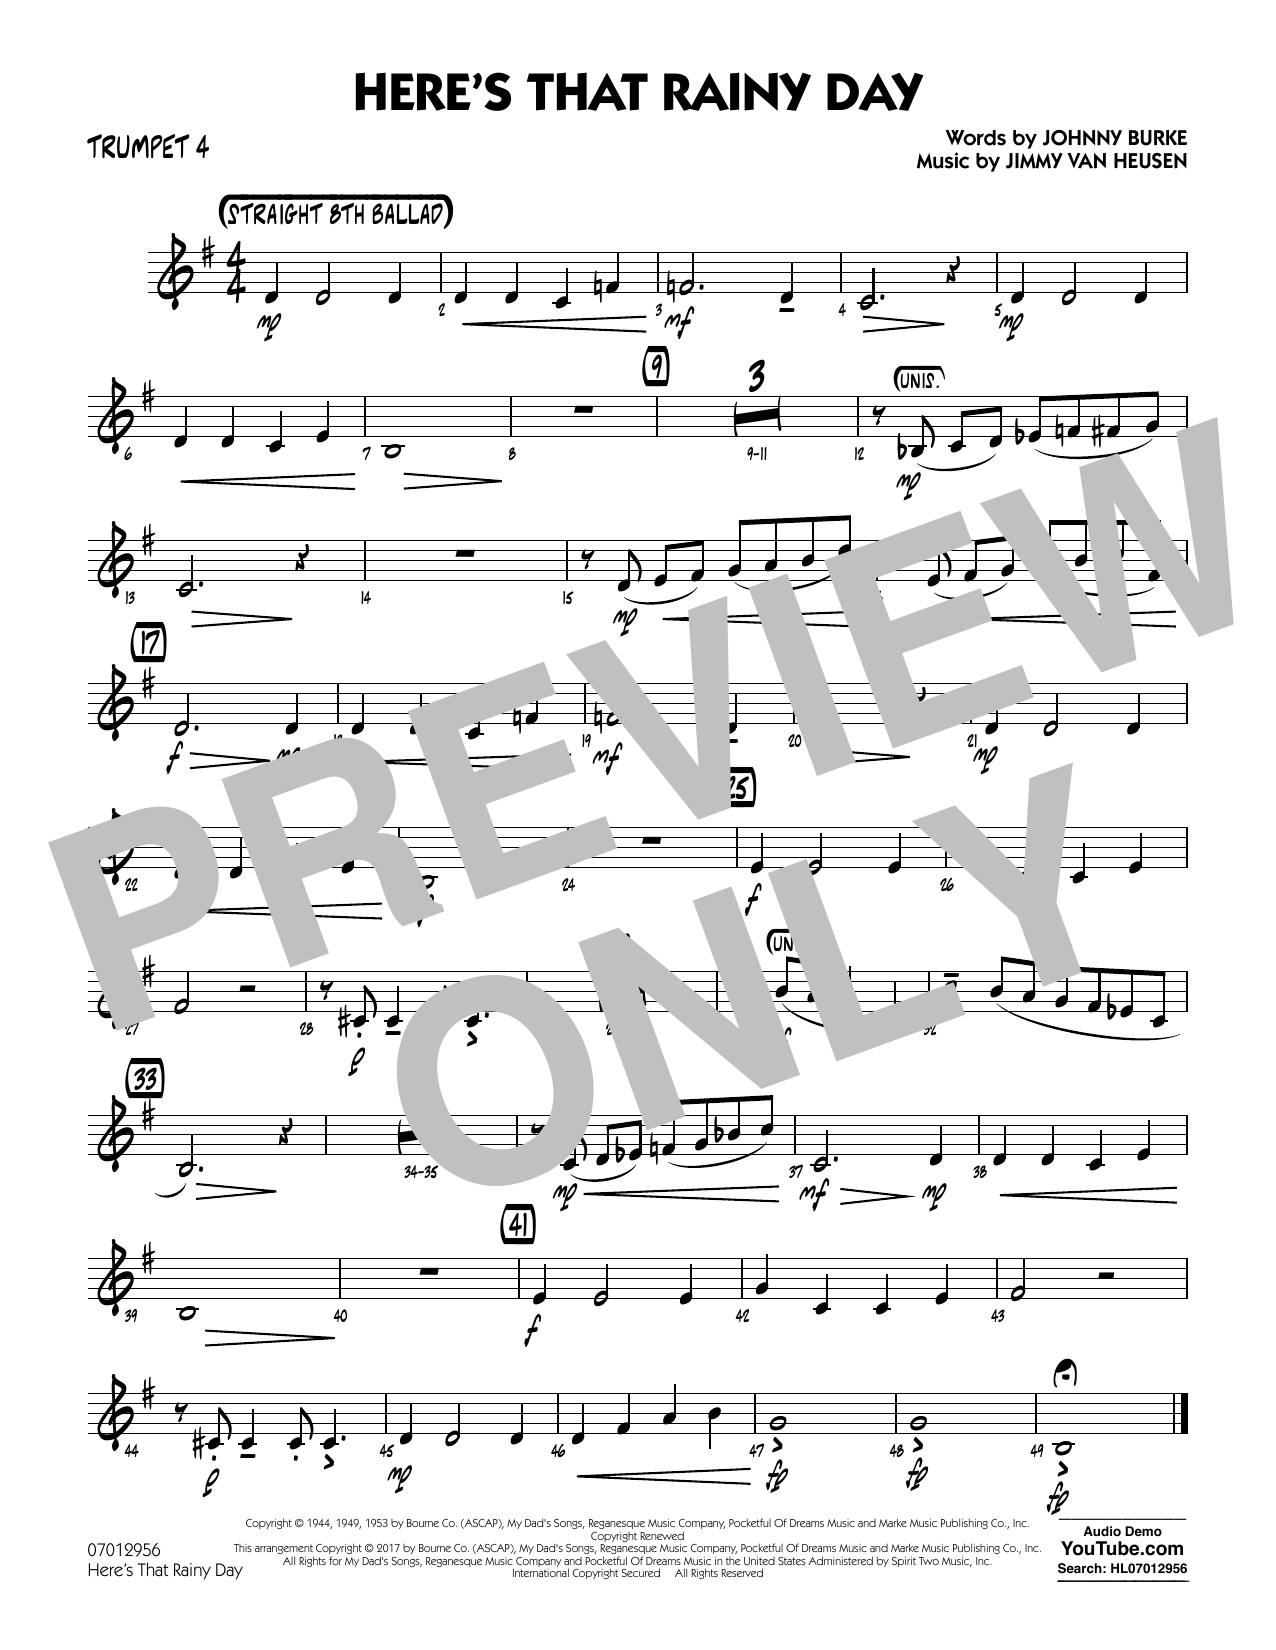 Rick Stitzel Here's That Rainy Day - Trumpet 4 sheet music notes and chords. Download Printable PDF.